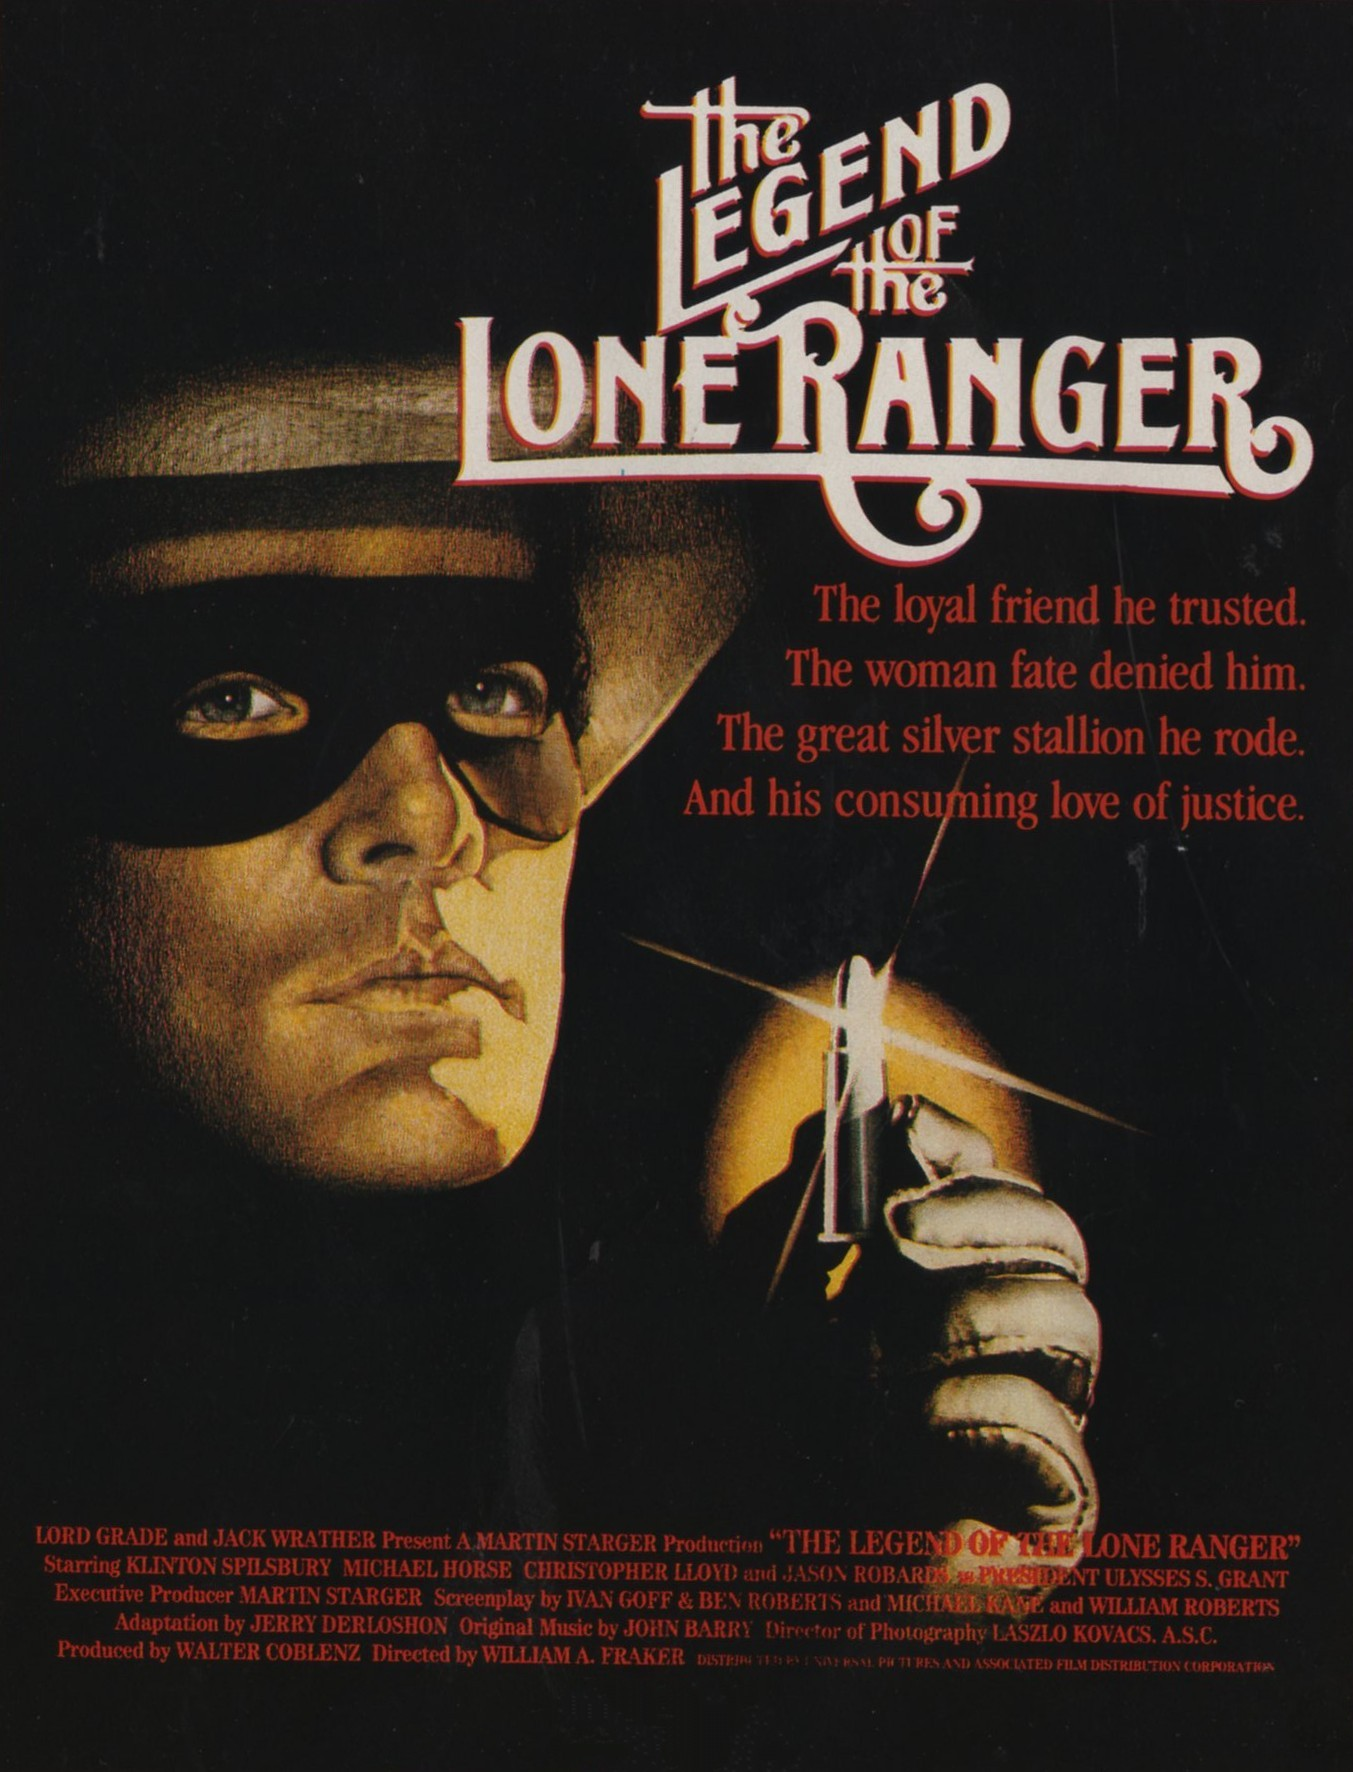 Lone ranger ride for justice sweepstakes and giveaways